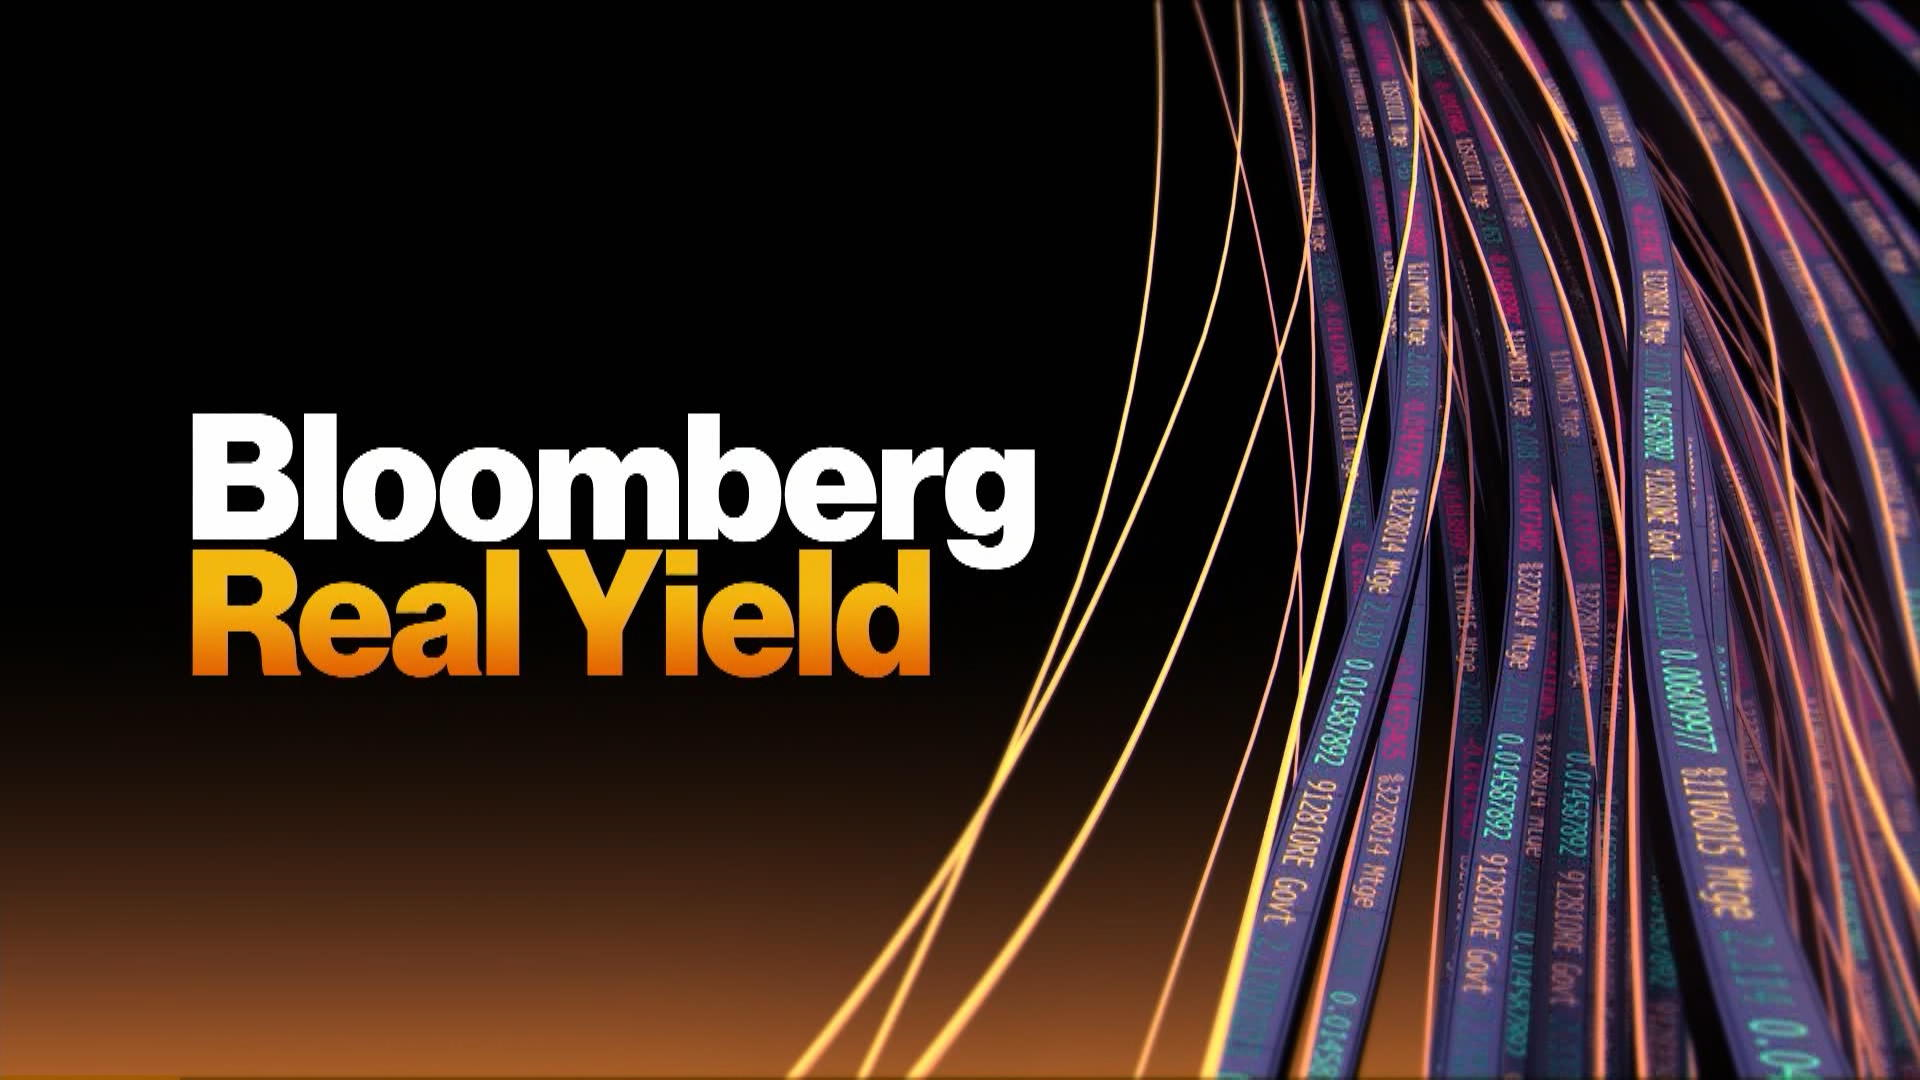 'Bloomberg Real Yield' Full Show (05/31/2019)